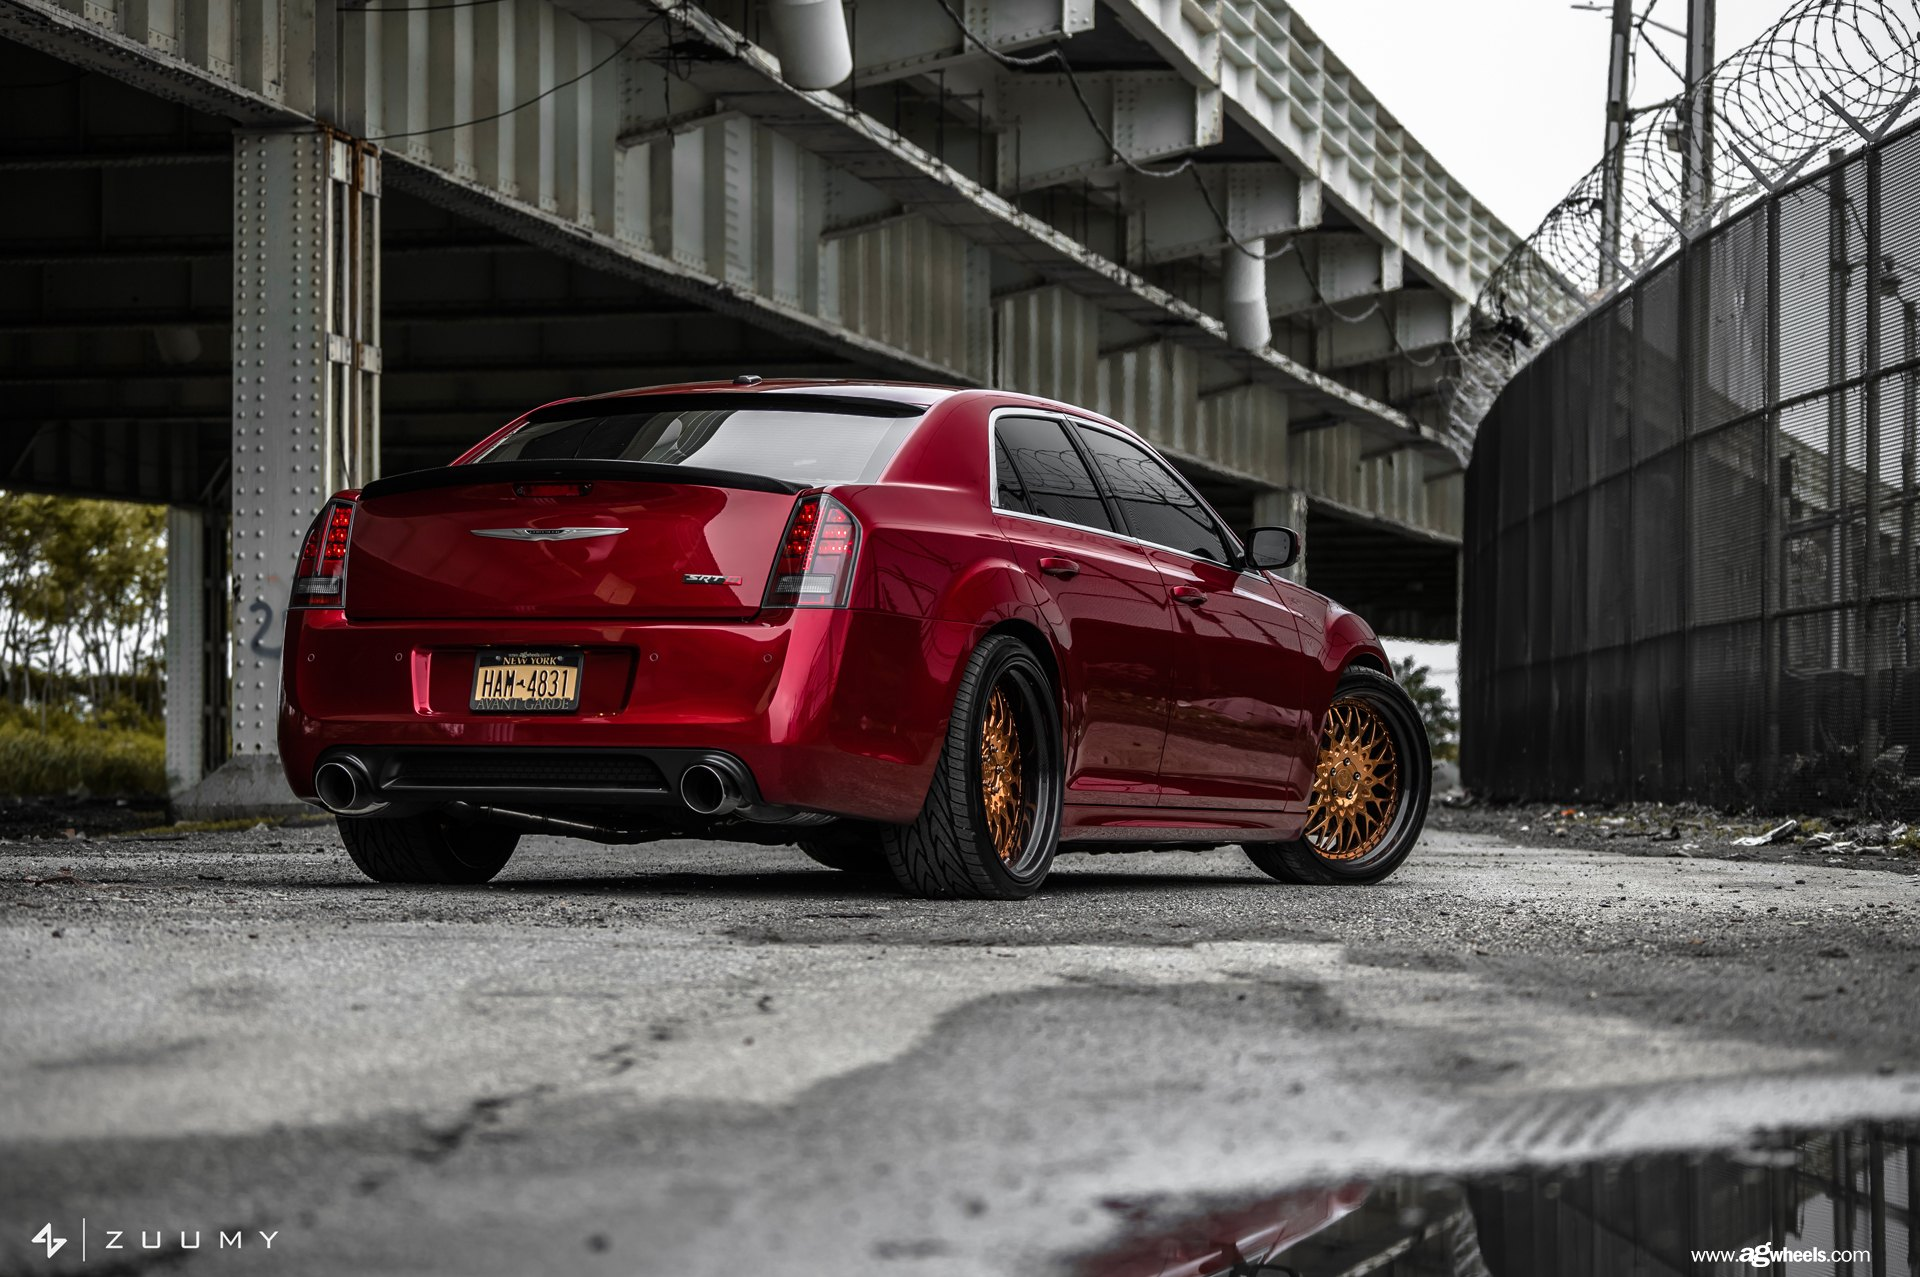 Factory Style Rear Spoiler on Red Chrysler 300 - Photo by Avant Garde Wheels